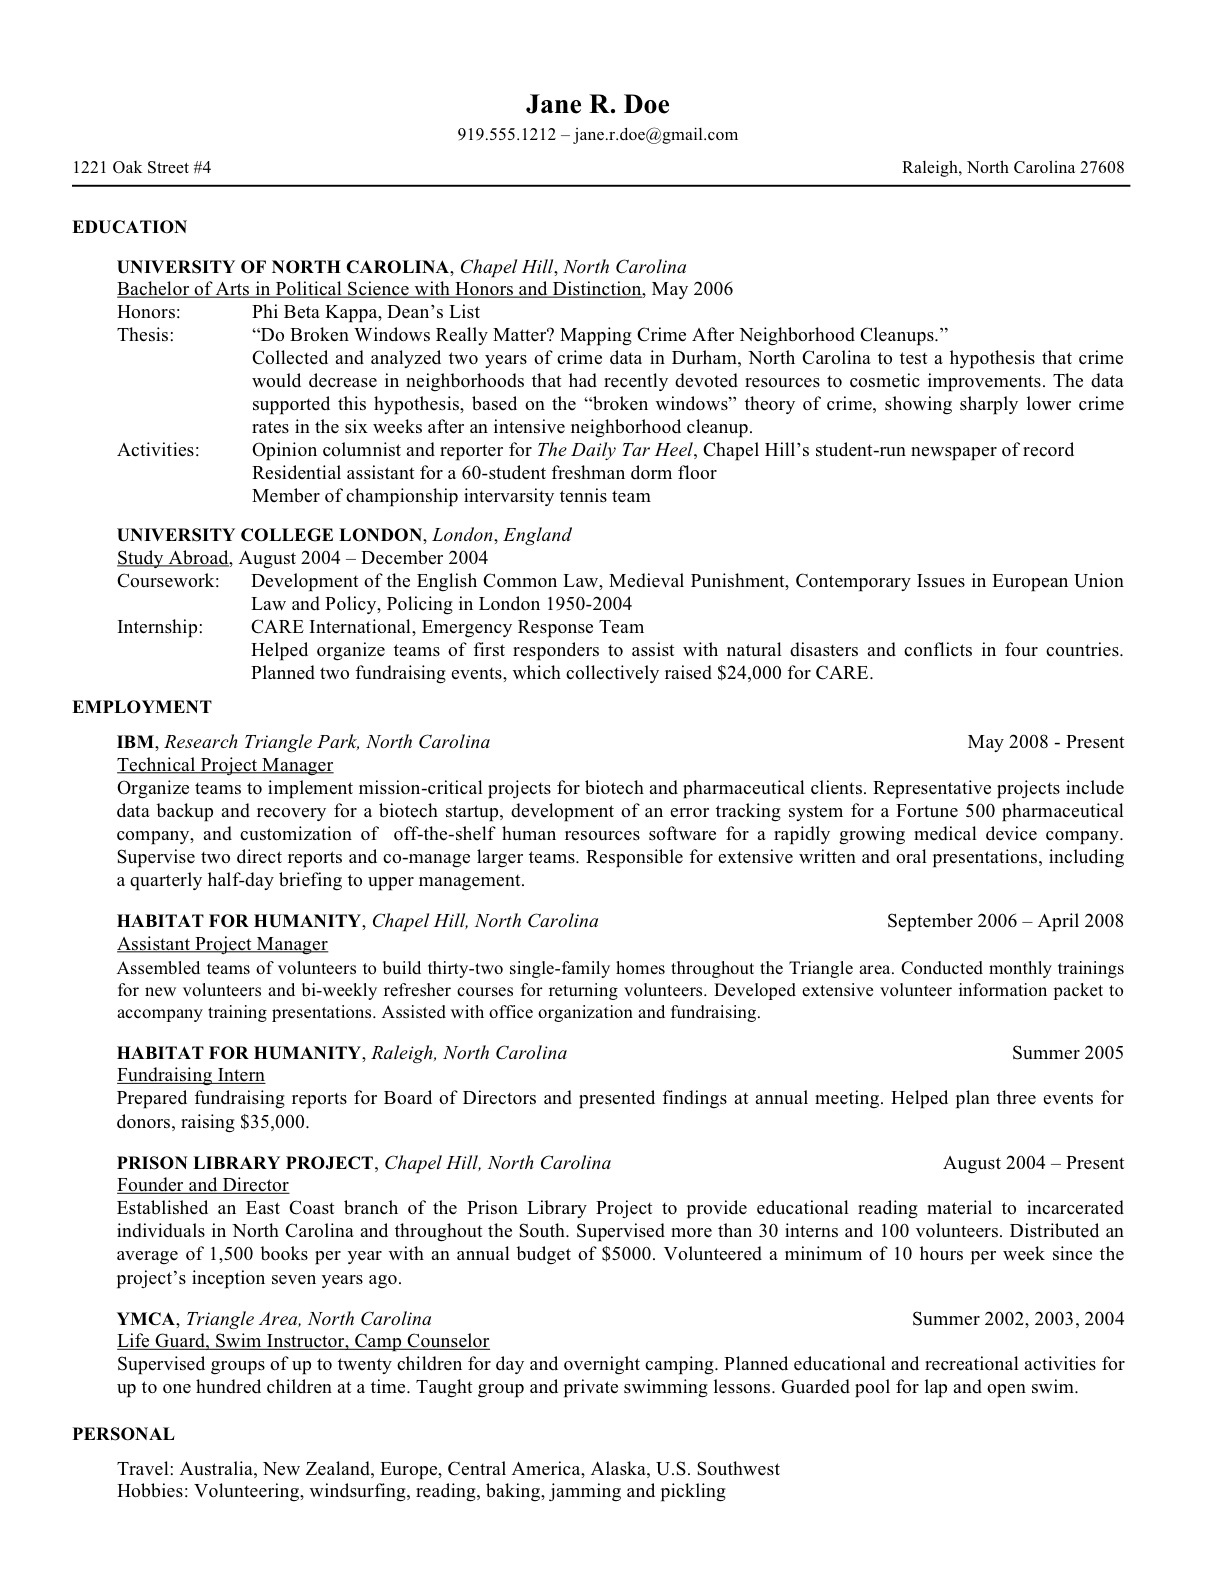 law school resume templates prepping your for of university at tdsb highlights form free Resume Tdsb Resume Highlights Form